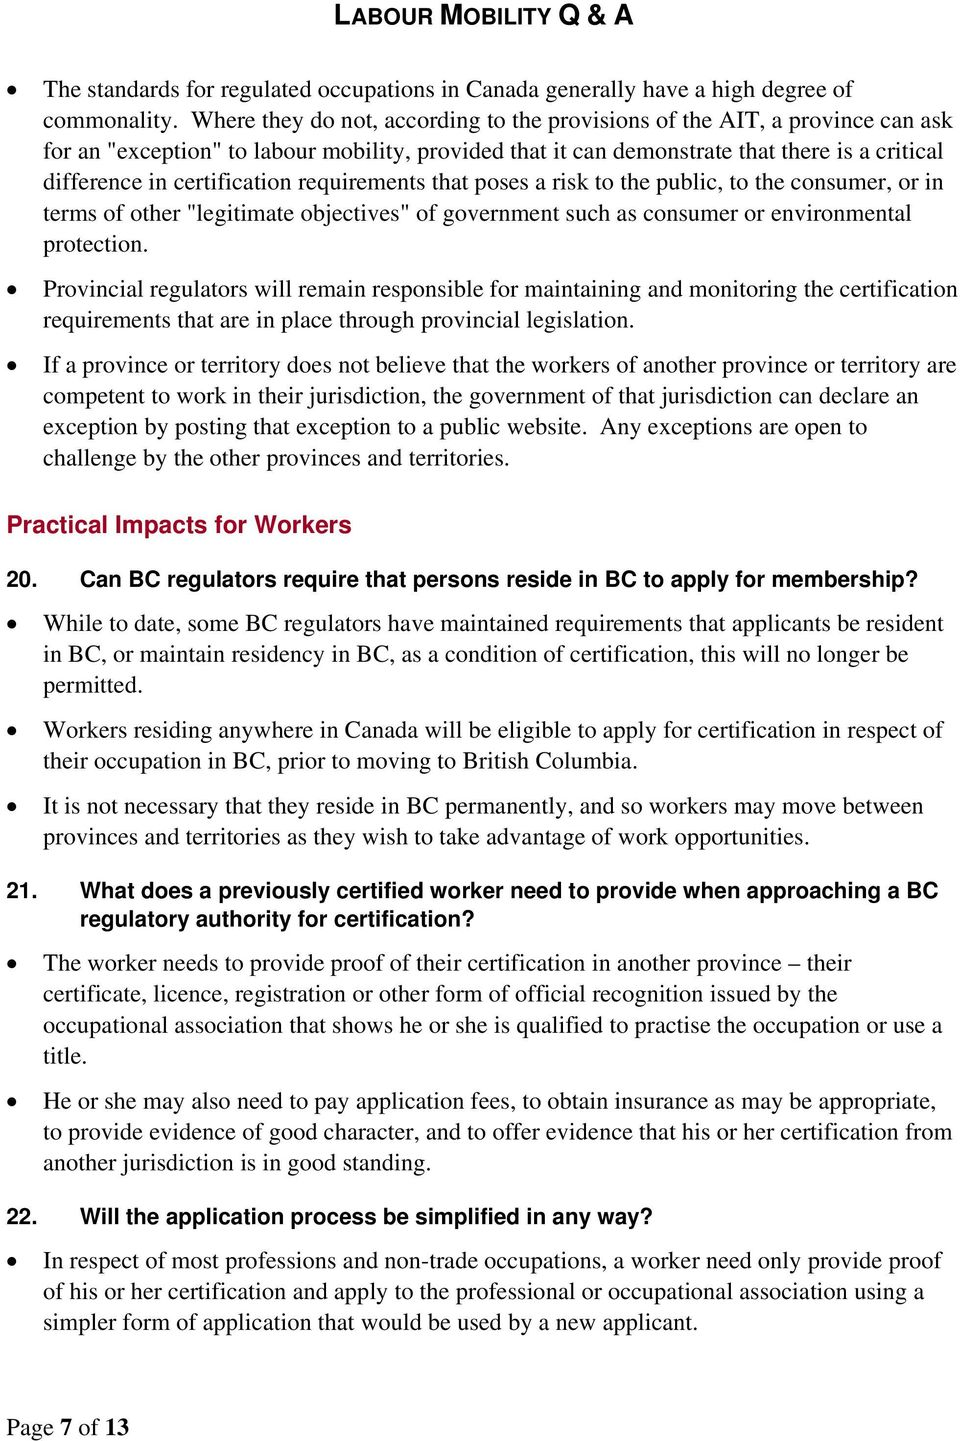 "certification requirements that poses a risk to the public, to the consumer, or in terms of other ""legitimate objectives"" of government such as consumer or environmental protection."